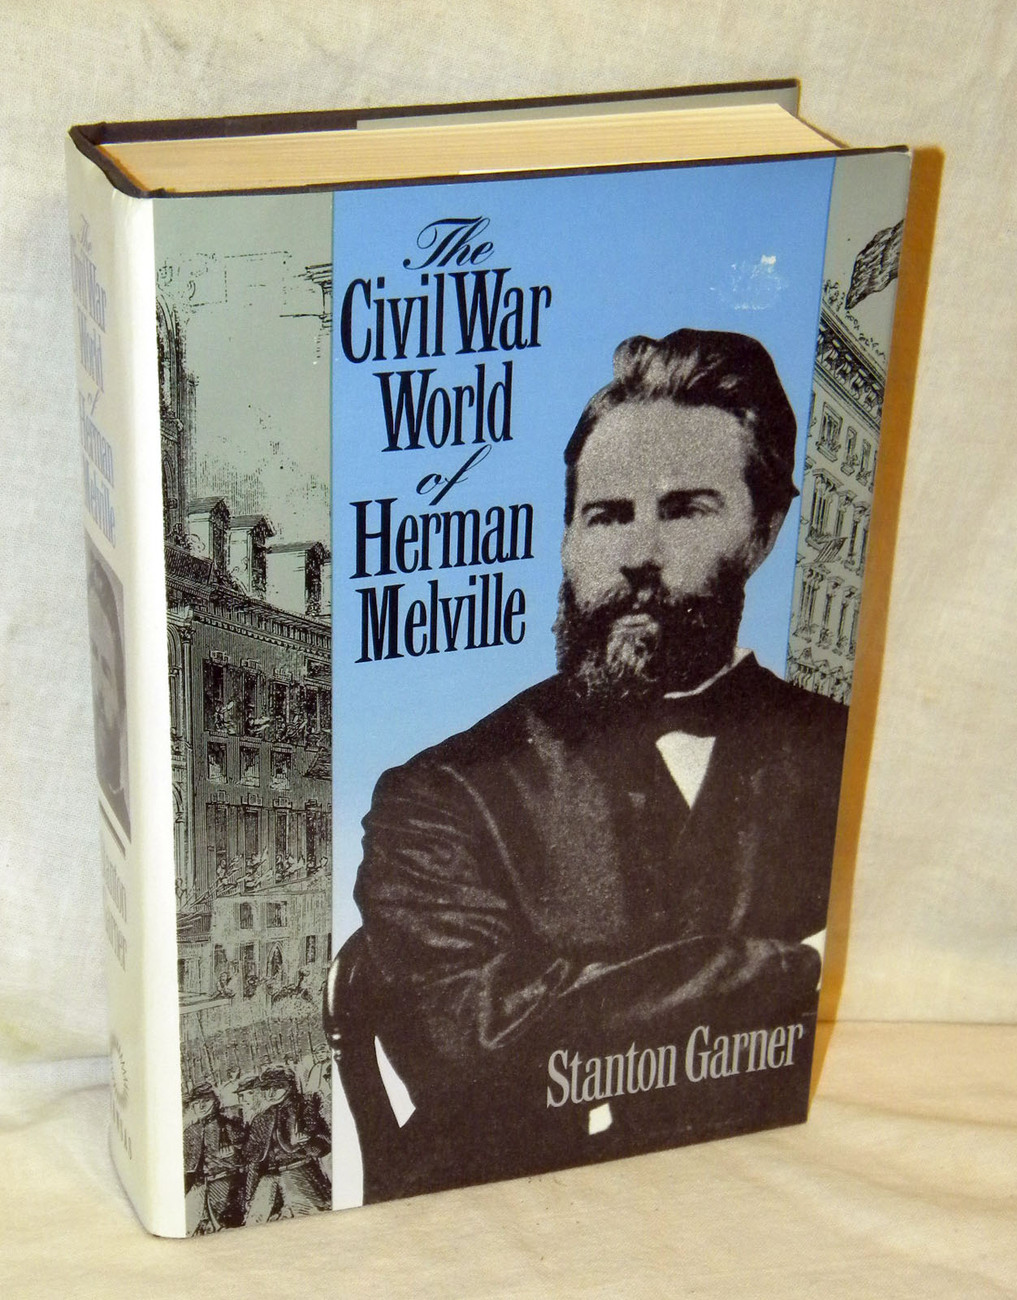 The Civil War World of Herman Melville  by Stanton Garner   HB